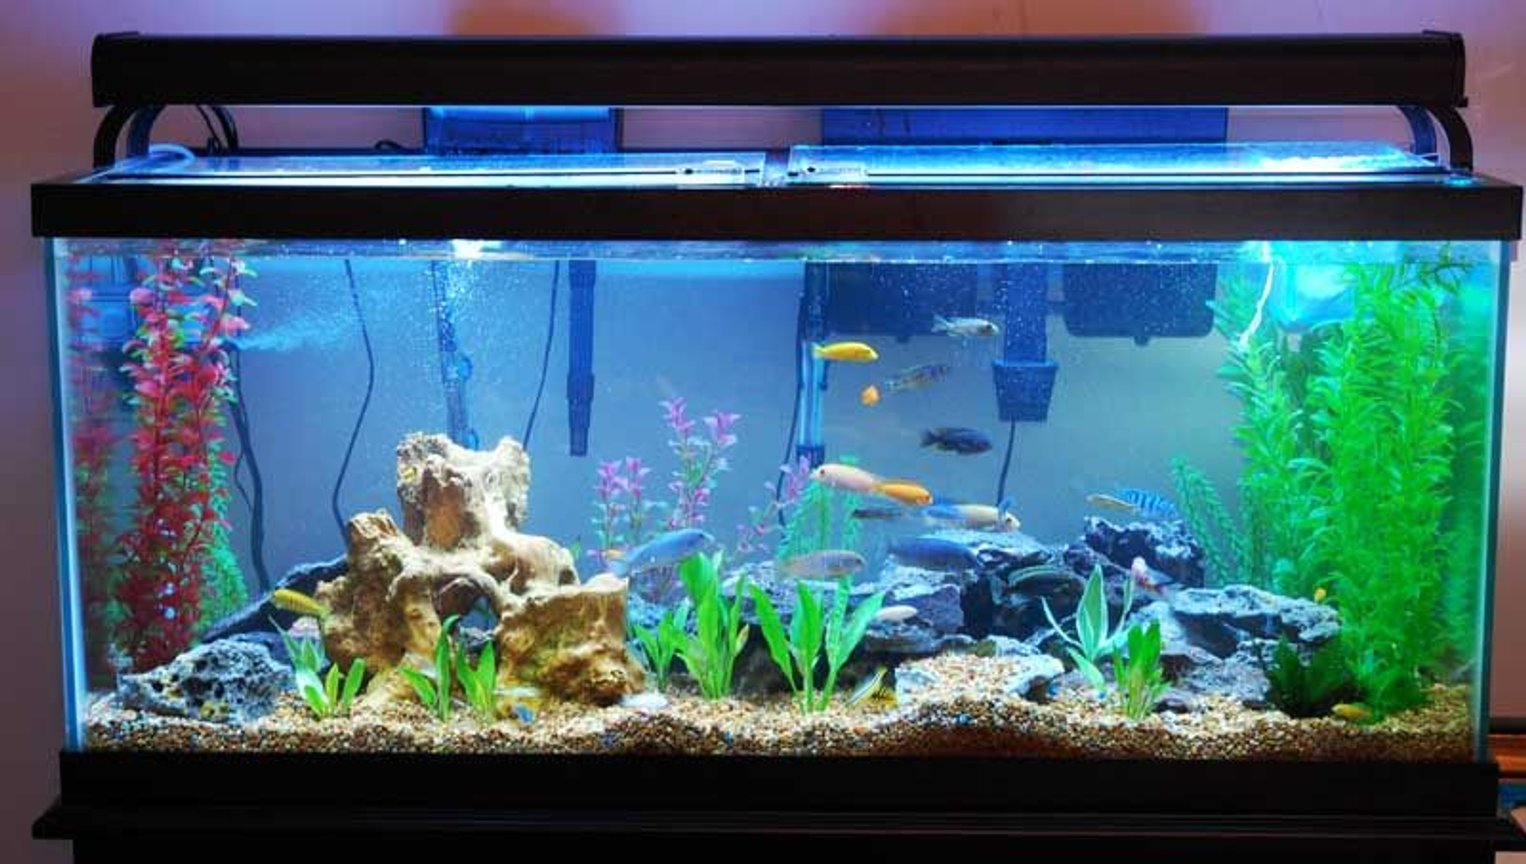 75 gallons freshwater fish tank (mostly fish and non-living decorations) - sunlight setting